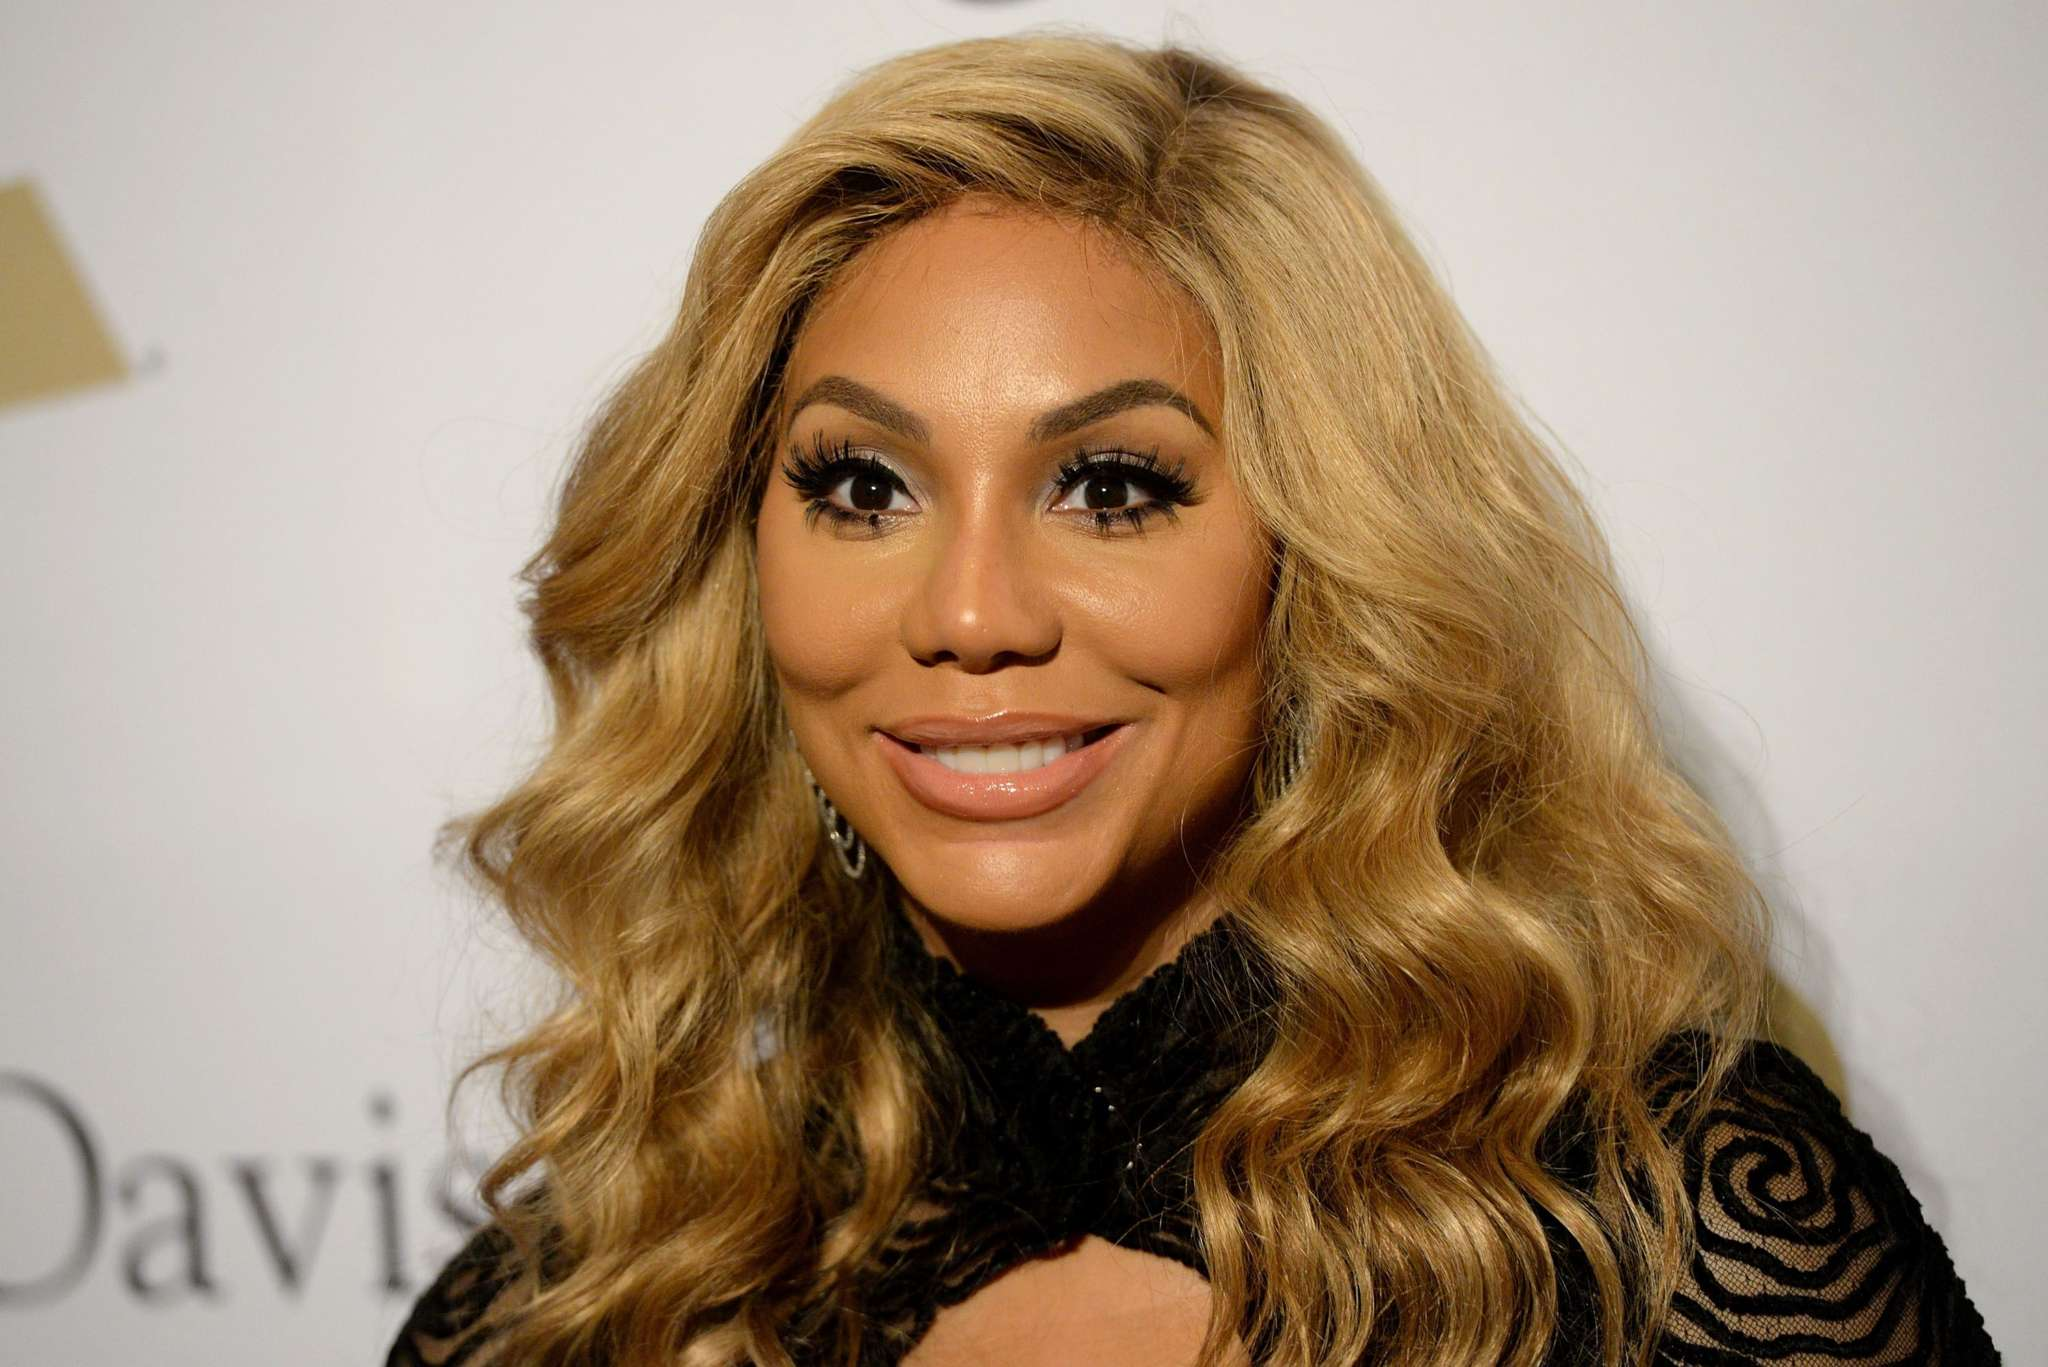 Tamar Braxton Reveals How Life Changed Since Online School Started